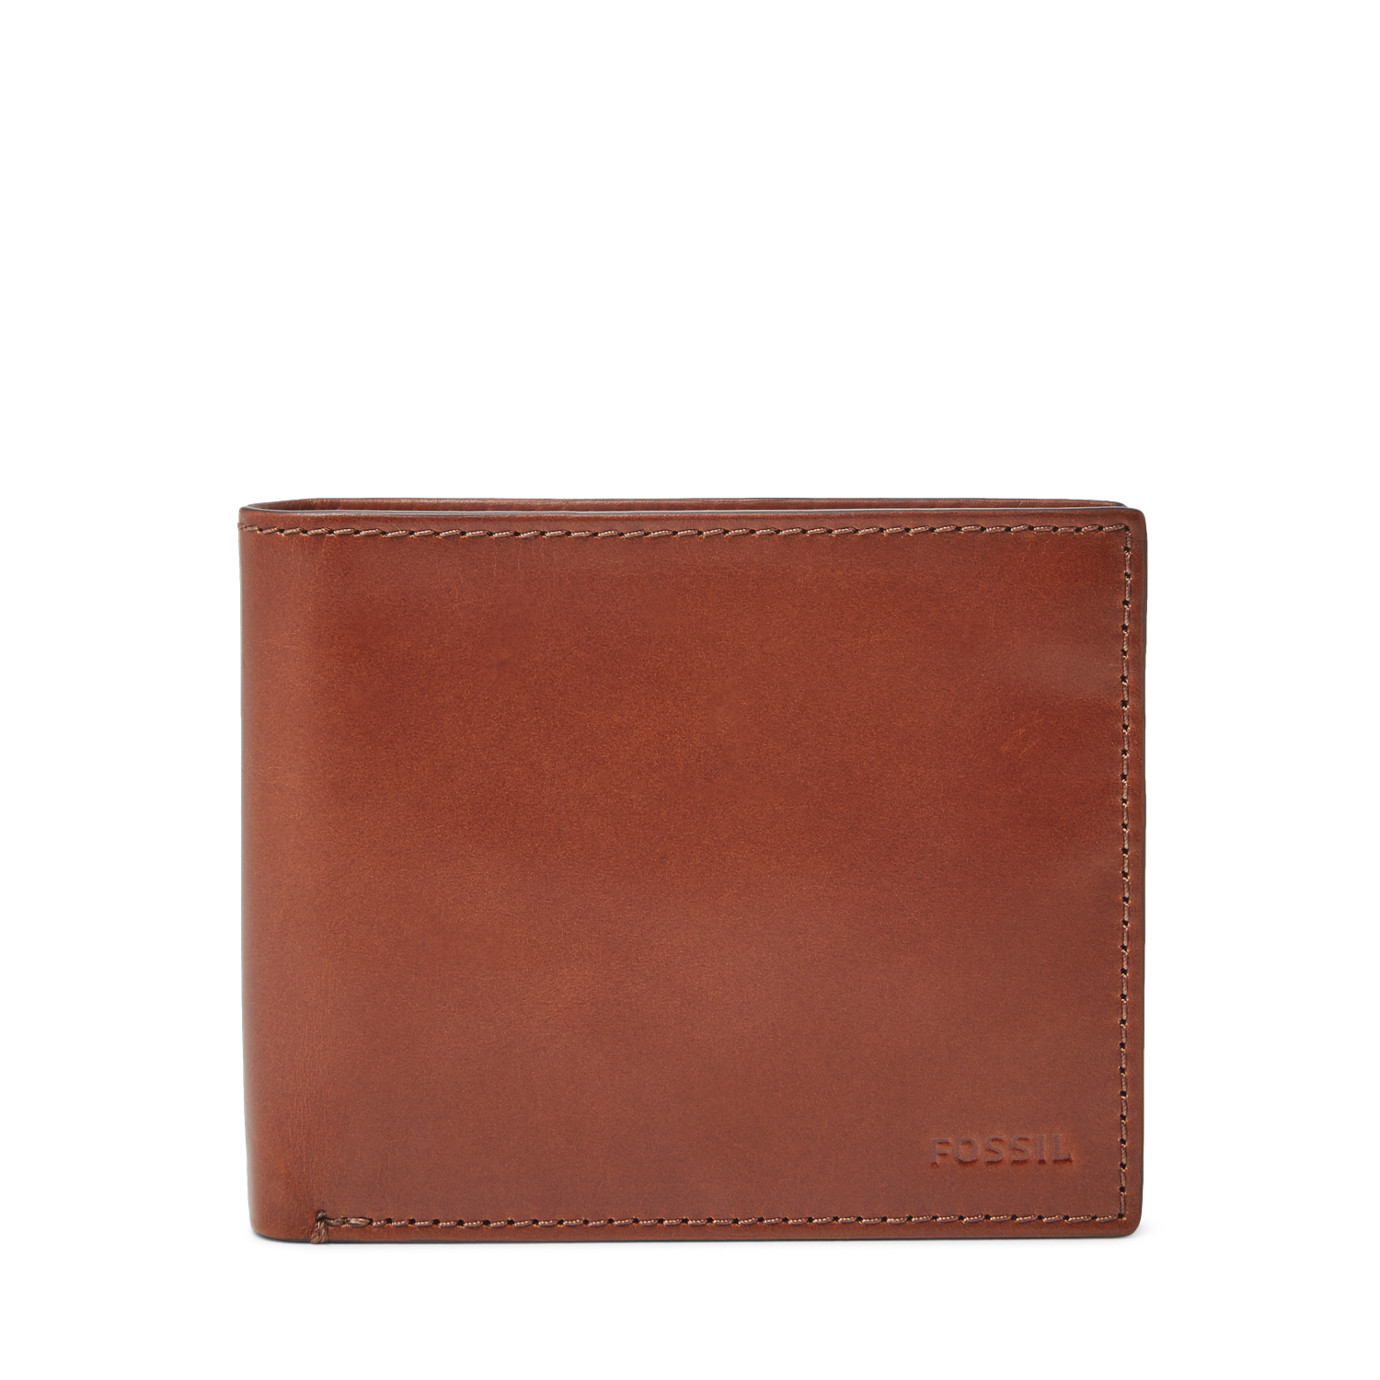 Hugh RFID Large Coin Pocket Bifold